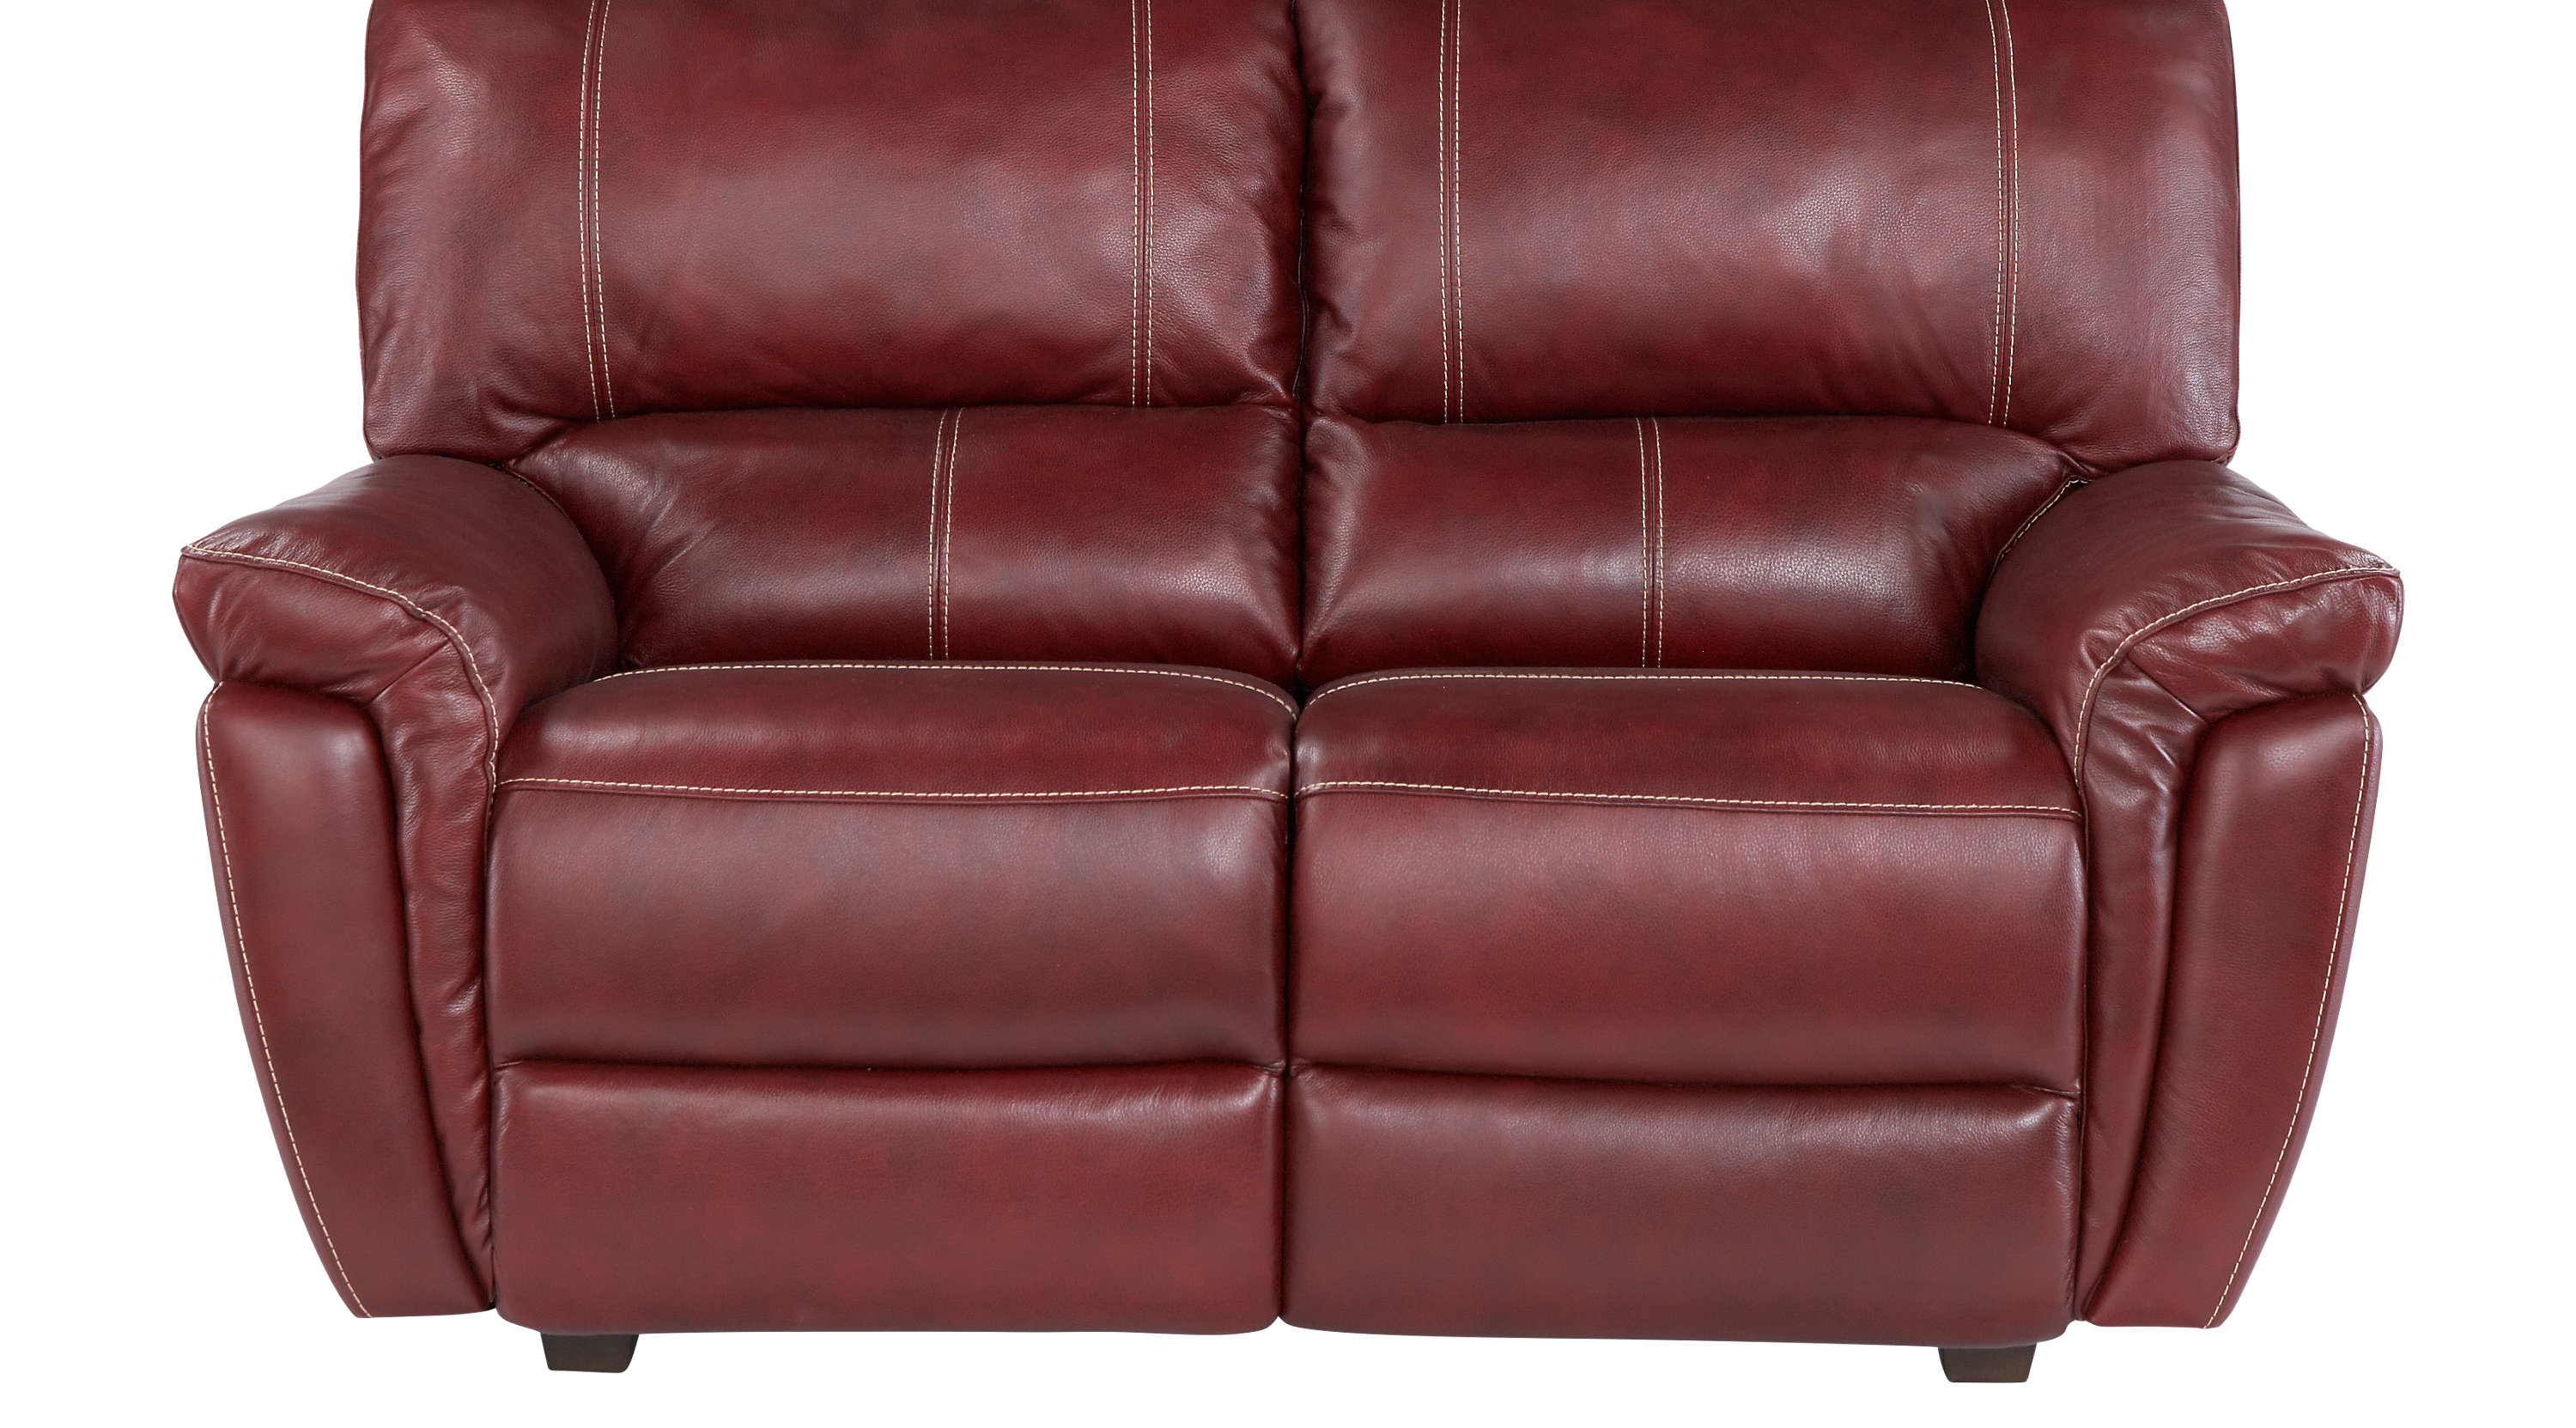 $577.00 - Browning Bluff Red Leather Loveseat - Classic - Contemporary,